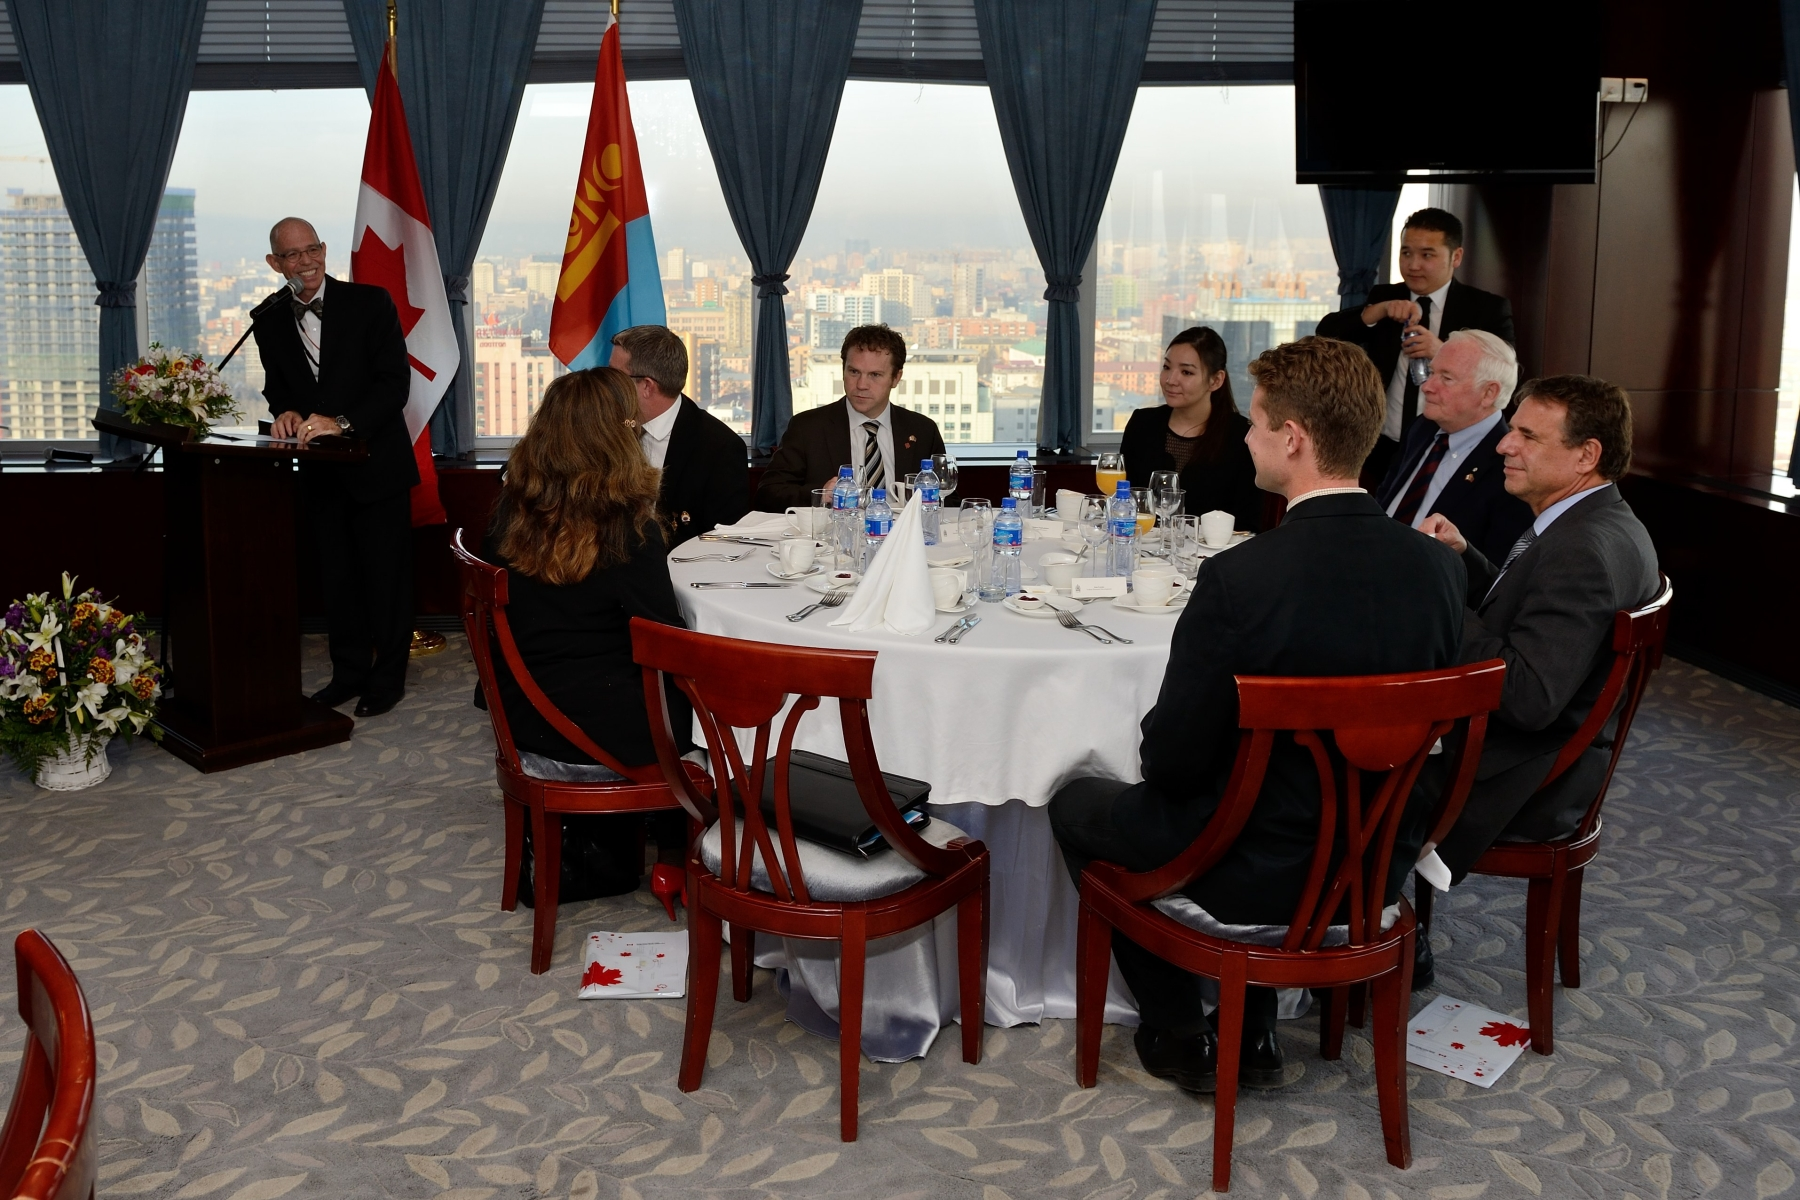 On his last day in Mongolia, His Excellency attended a breakfast with various Canadian business leaders.